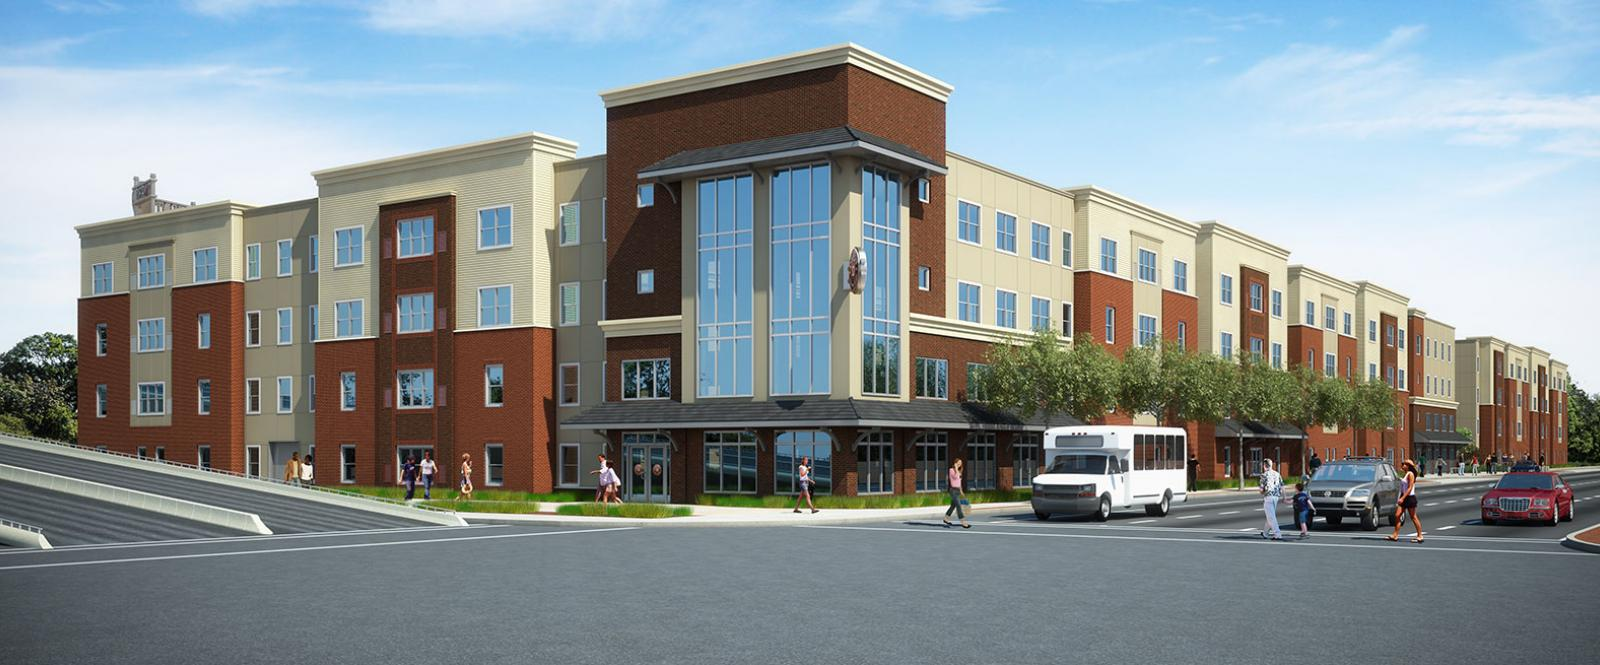 Construction On Schedule And Apartments Leasing Fast At The Depot In Akron